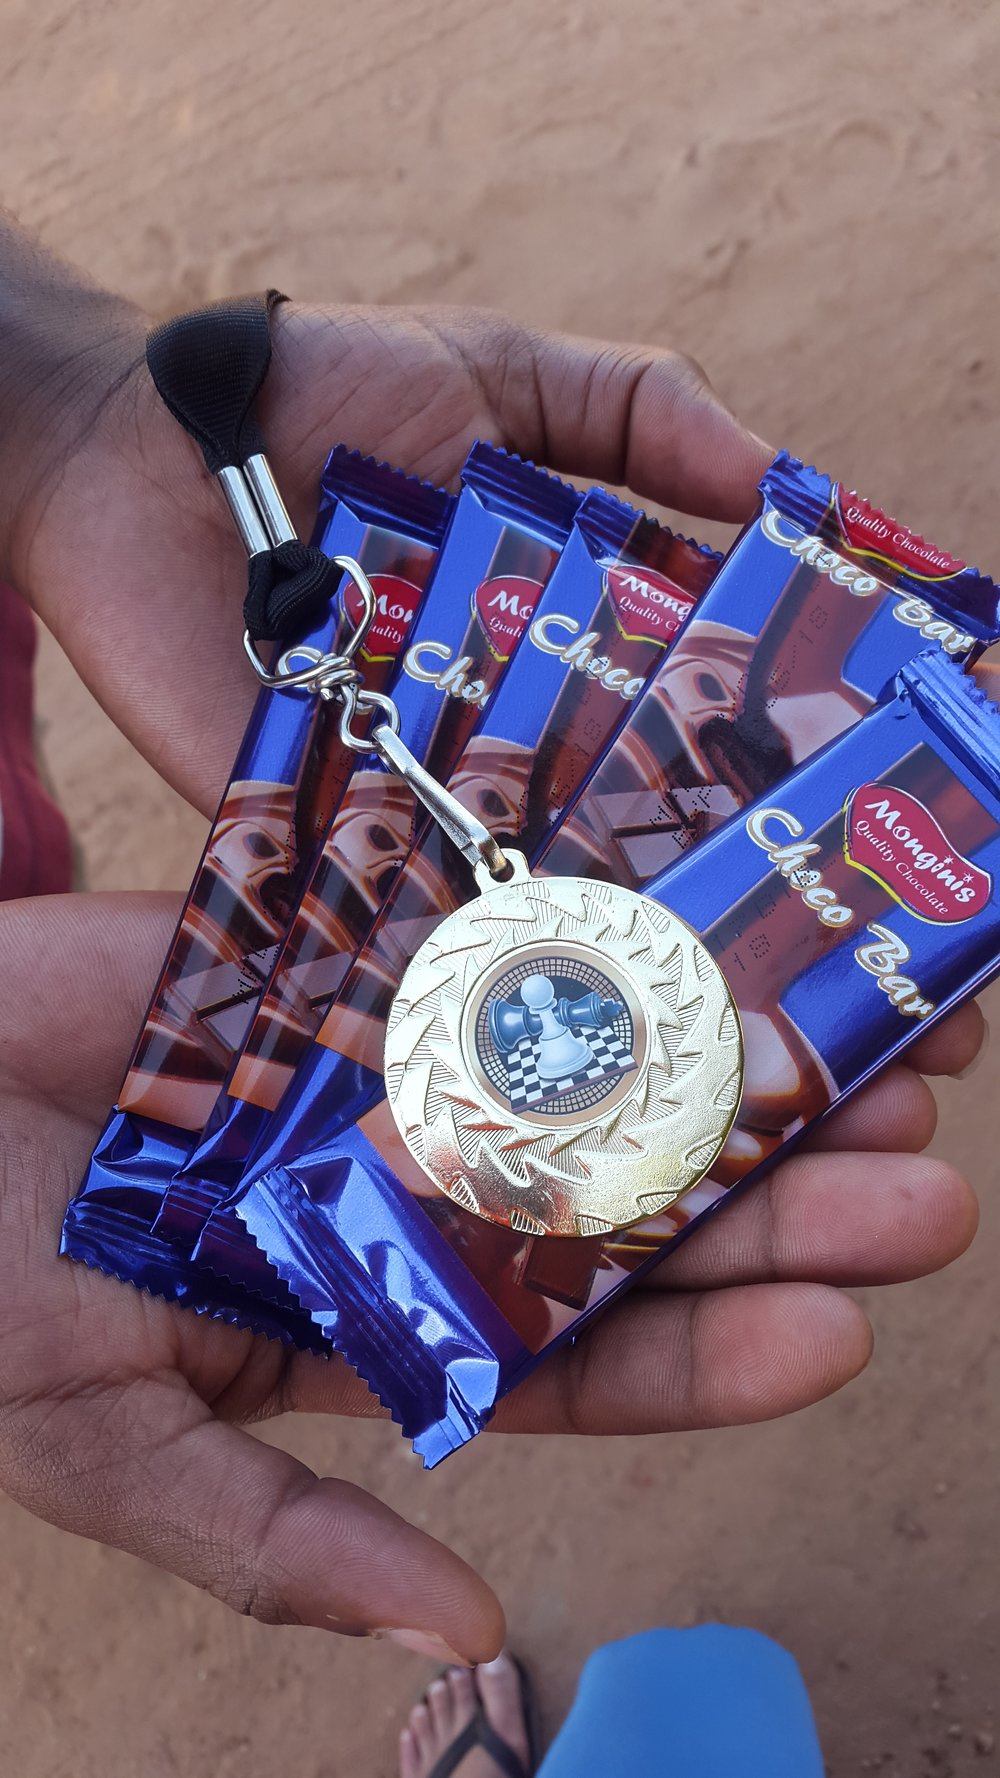 One of the boys proudly showcasing the tournament prizes. Each boy received chocolate for playing but continued to gain more chocolate bars as they progressed through the rounds. The ultimate victor earned the much coveted (and first) UP Zambia Chess Championship Medal.